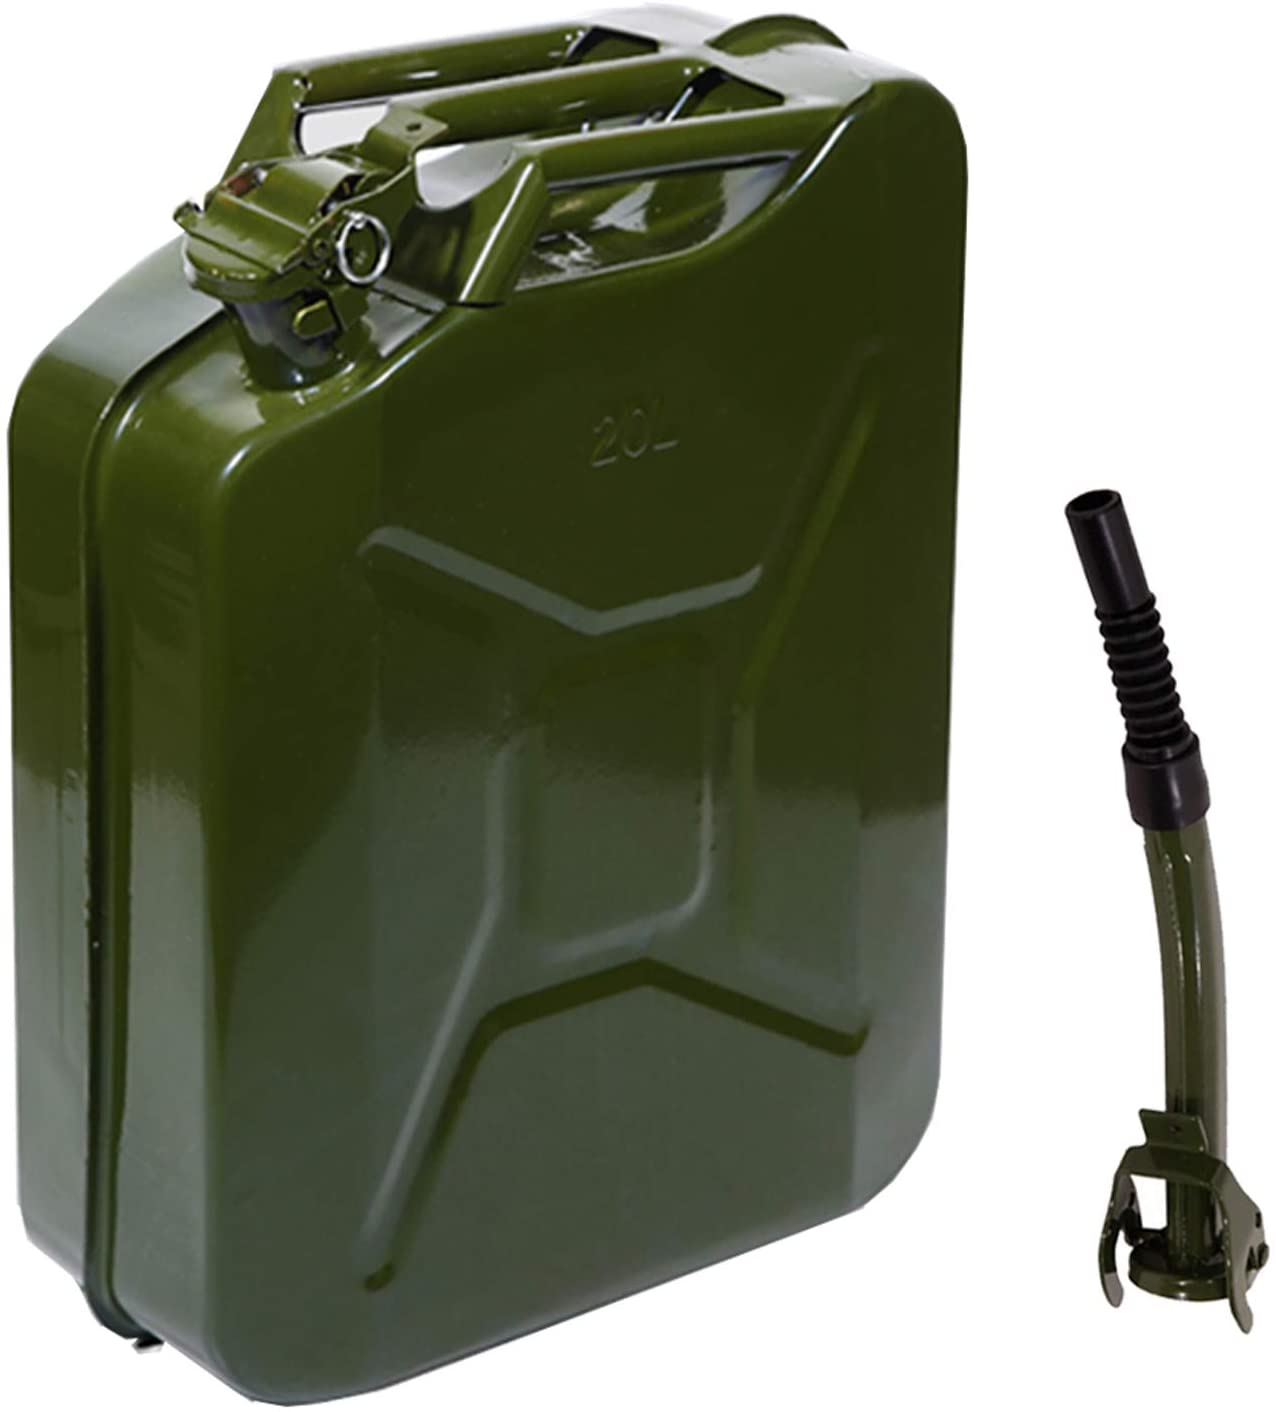 Green Military Army Style Metal Jerry Can Nozzle